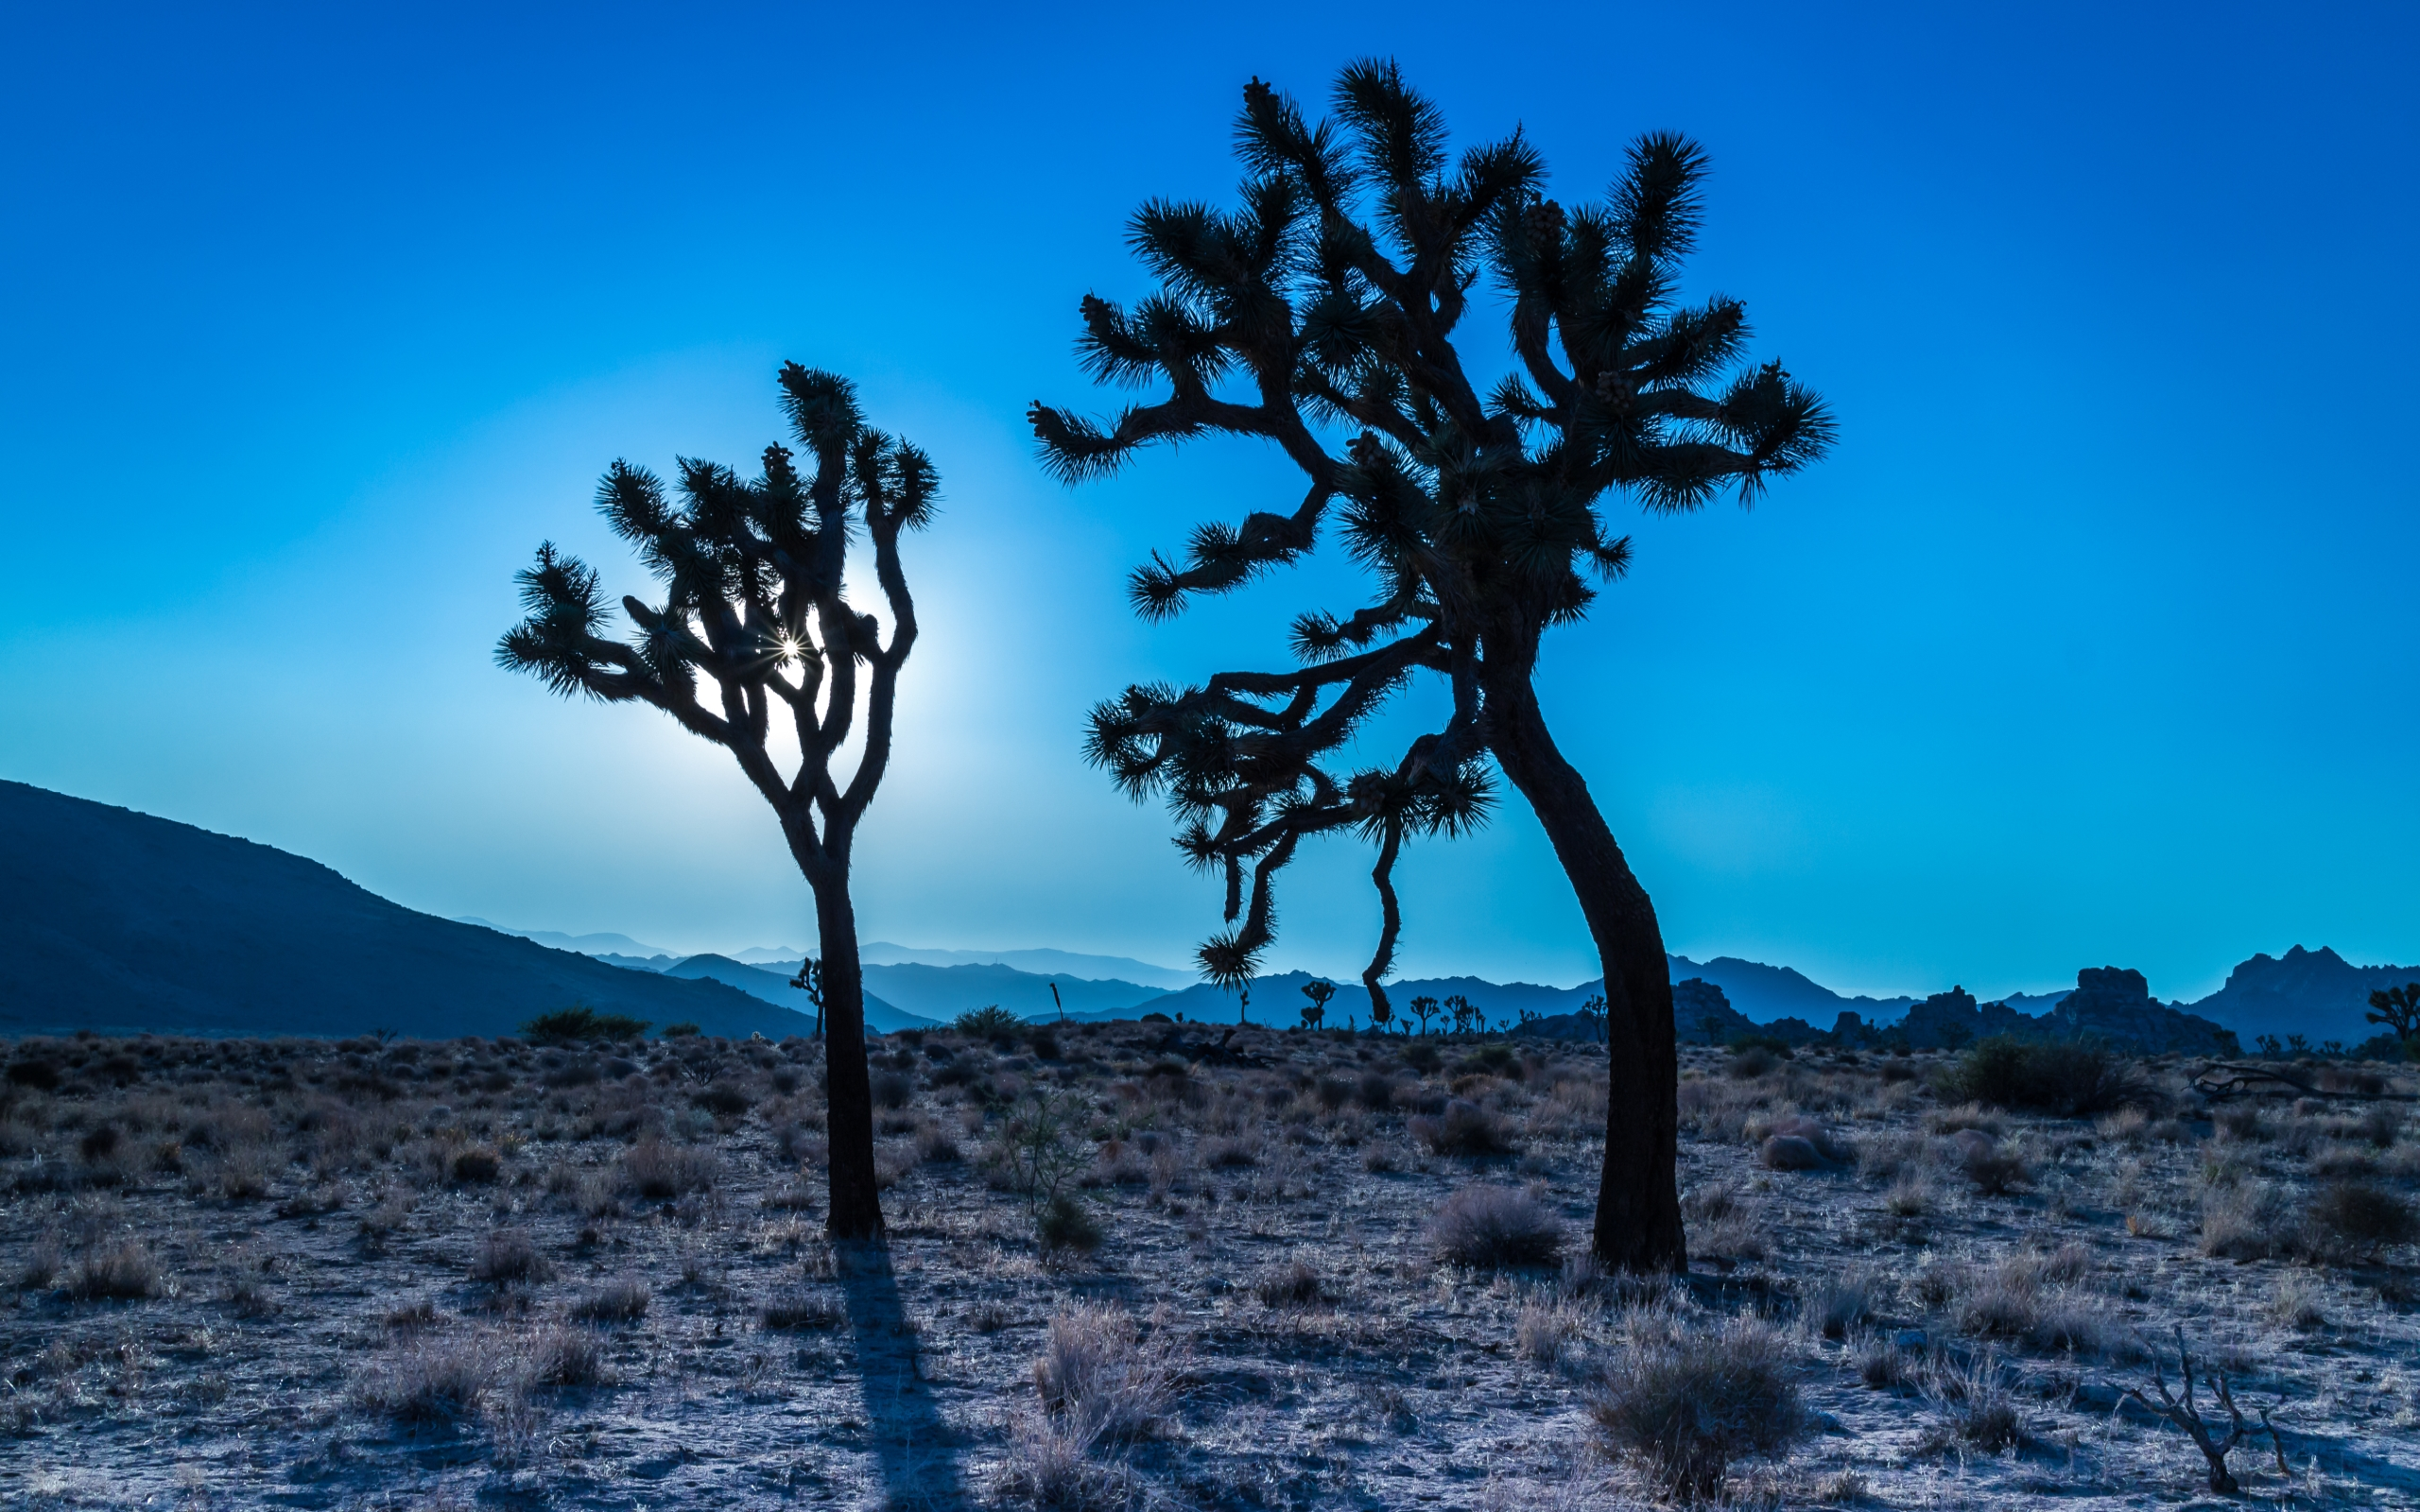 Joshua Tree National Park Hd Wallpapers All Hd Wallpapers